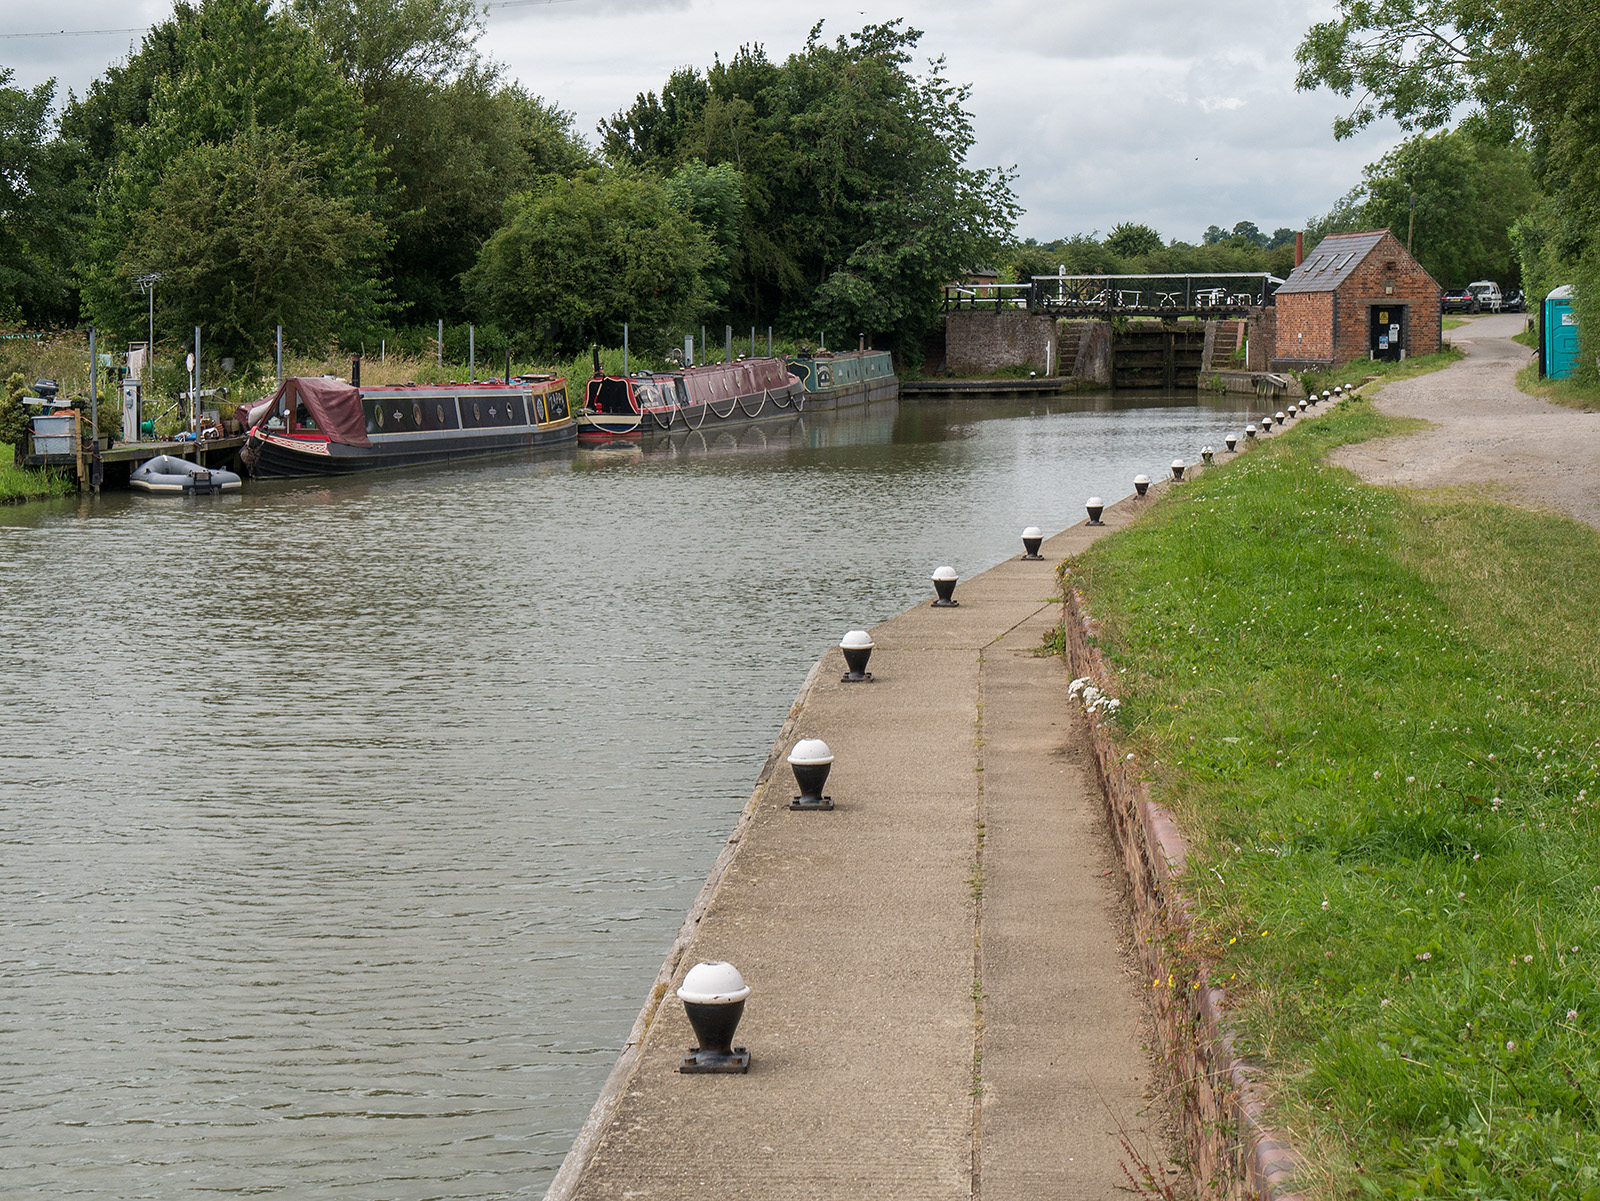 Approaching the bottom of the Stoke Bruerne flight of locks